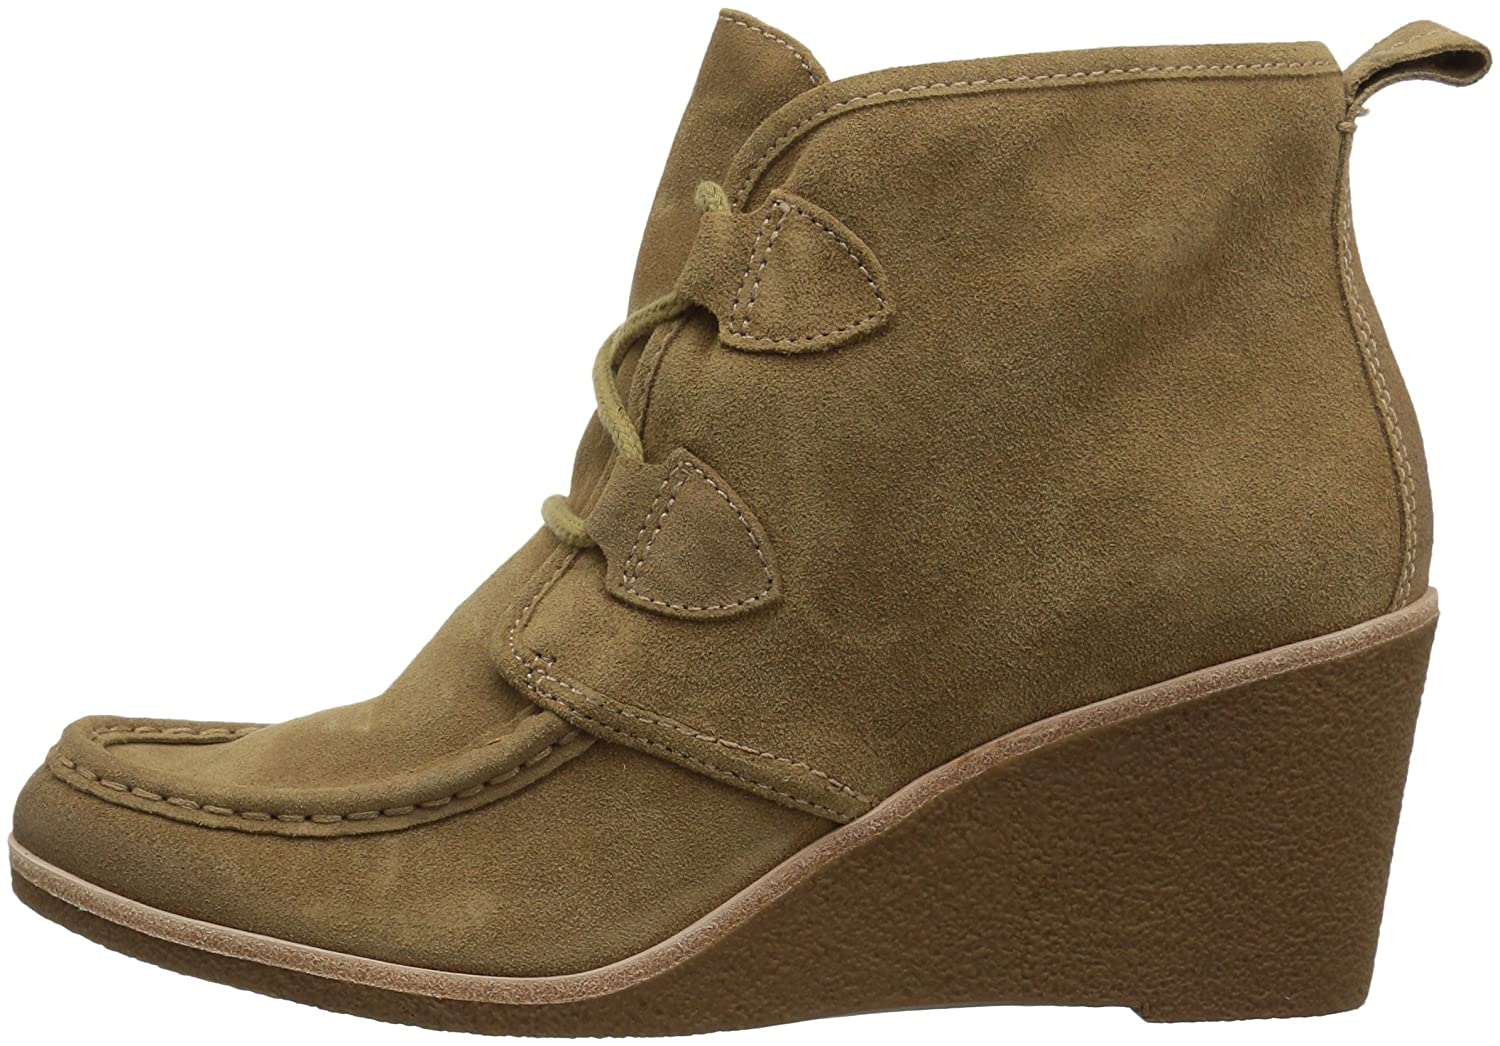 G.H. Bass & Co.. Women's Rosa Chukka Boot B072357XS2 9.5 B(M) US|Camel